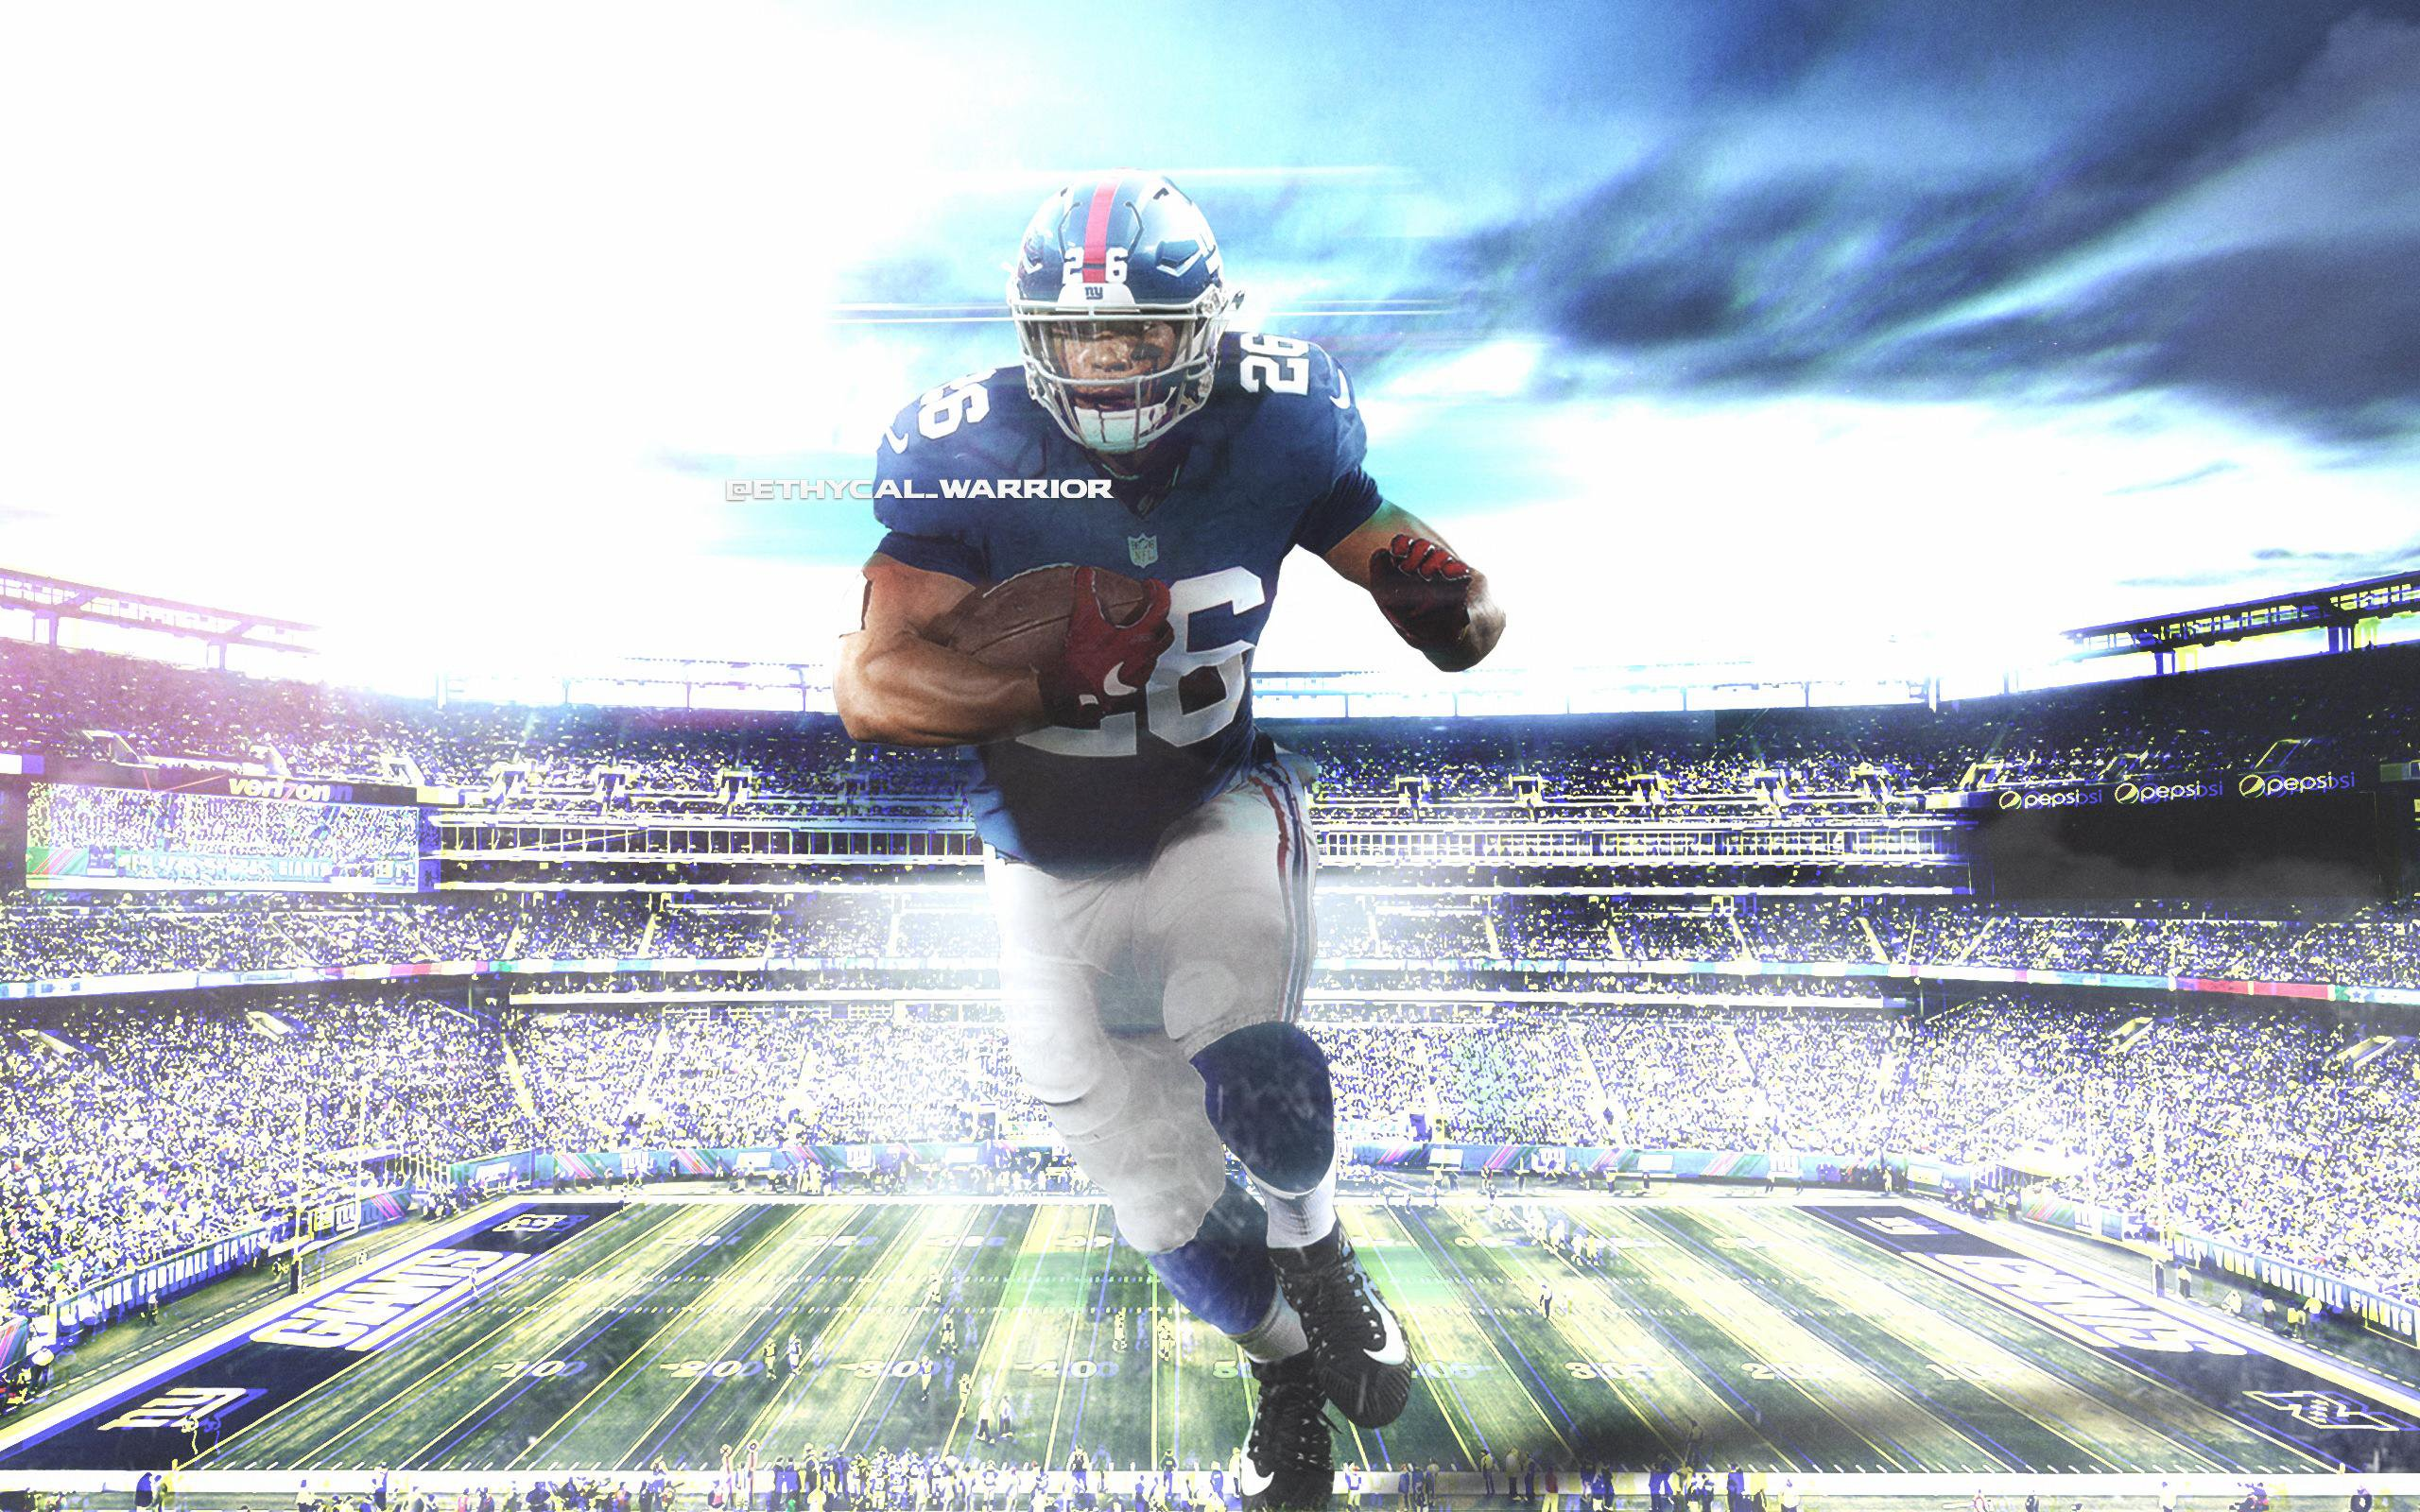 Saquon Barkley Top NFL Player Wallpaper for Phone and HD 2560x1600